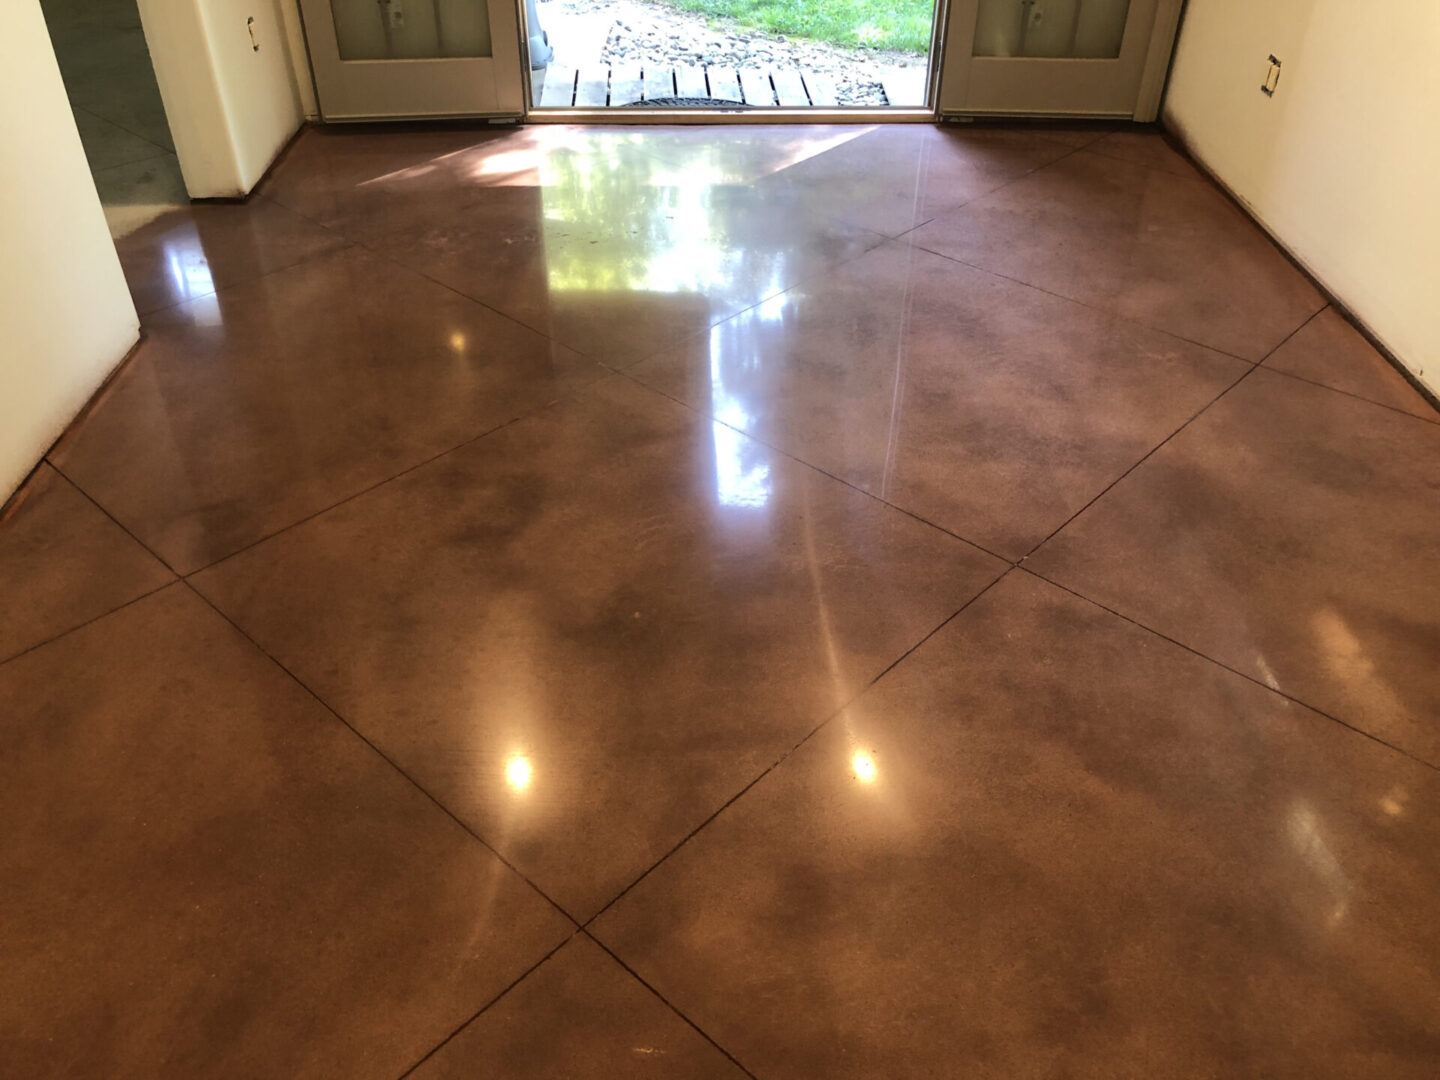 1,500 GRIT POLISHED CONCRETE